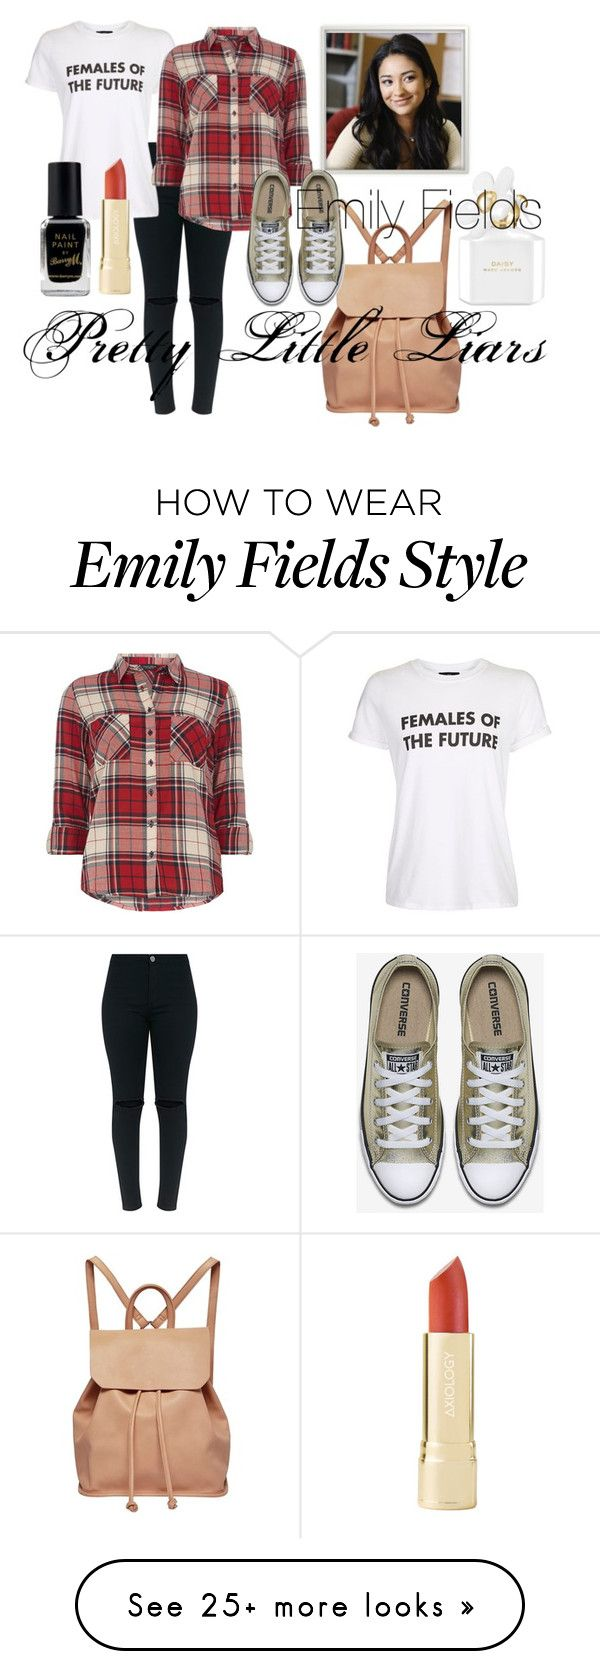 """Emily Fields Style- Pretty Little Liars"" by rarimena on Polyvore featuring Urban Originals, Topshop, Marc Jacobs, Dorothy Perkins, Barry M, PrettyLittleLiars, flannel and Tshirt"